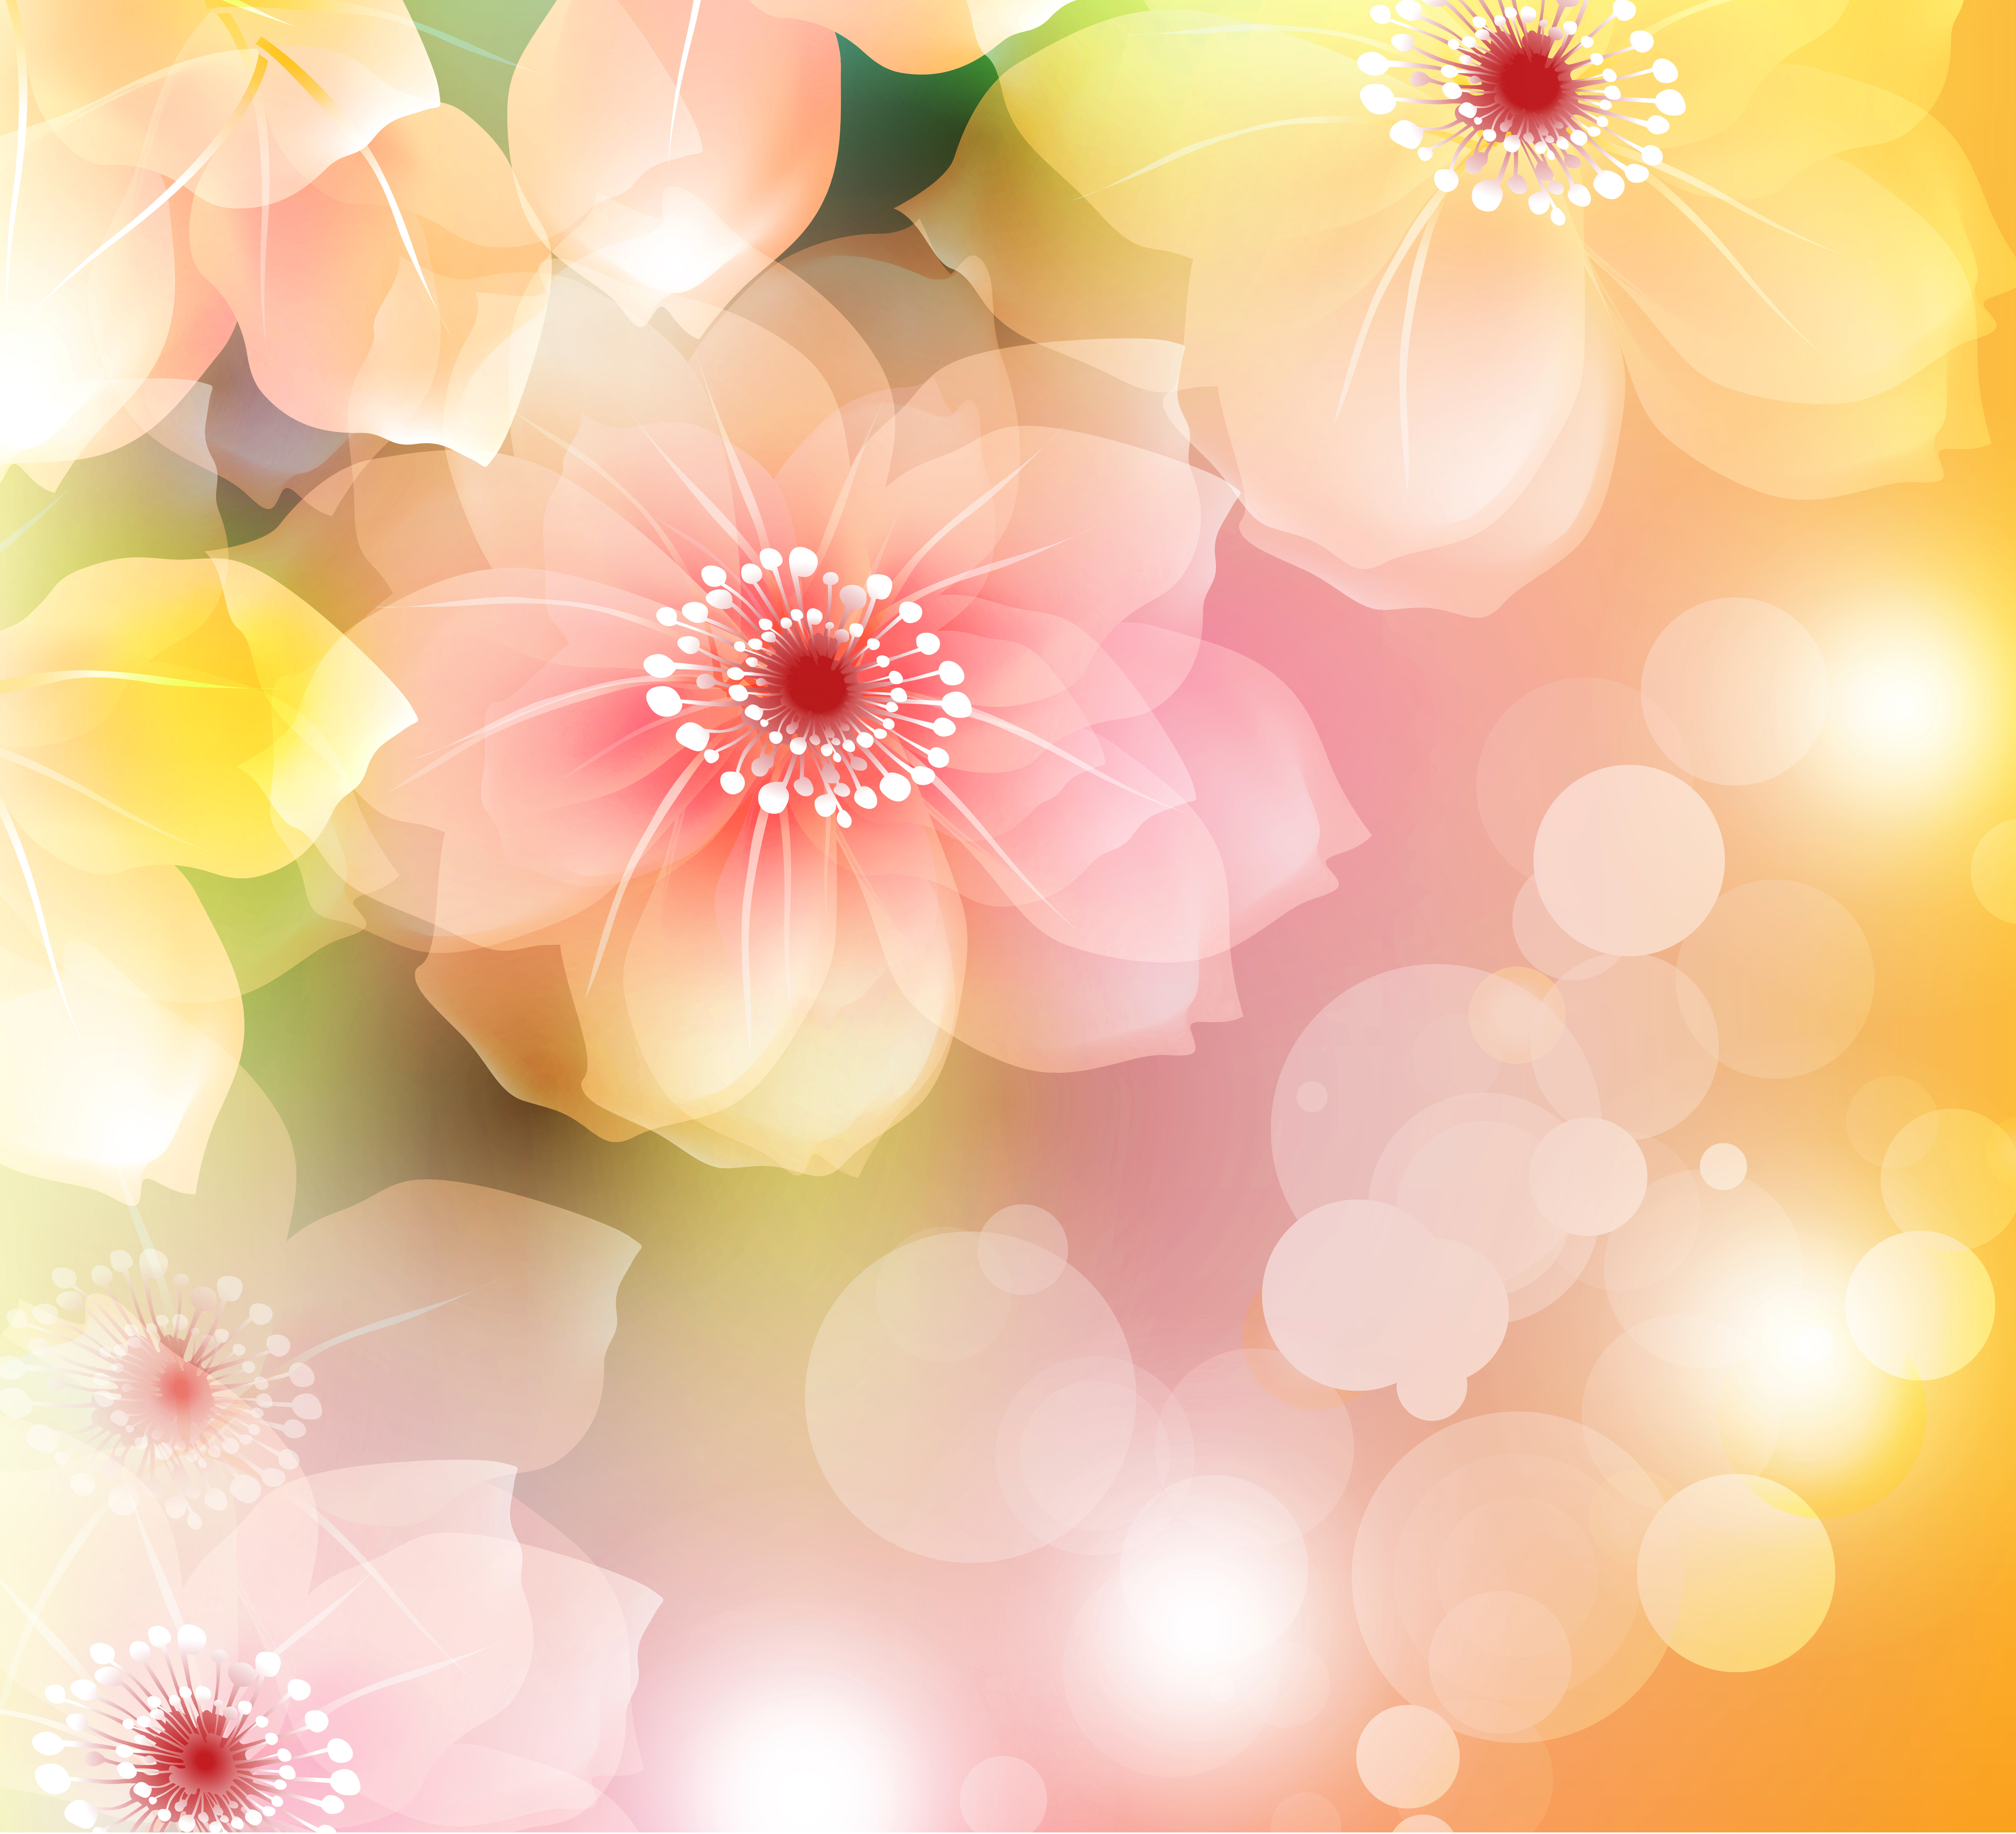 Floral images background graphic freeuse download Floral Background | taos.digimerge.net graphic freeuse download